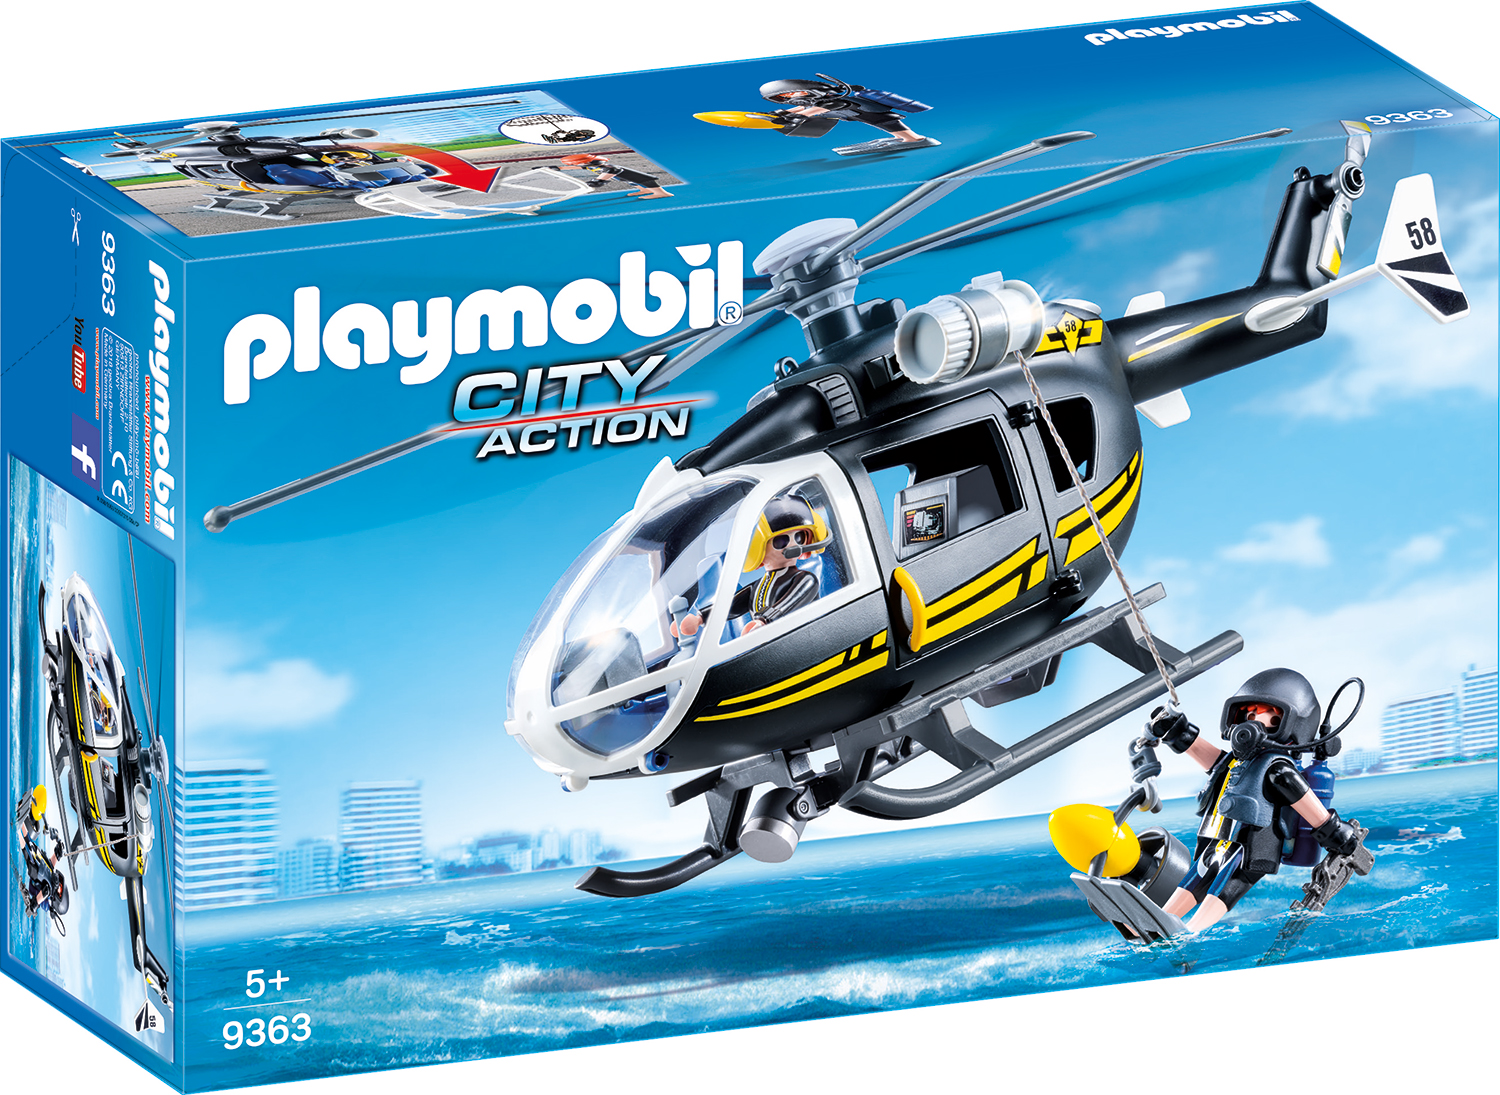 Elicopterul echipei swat playmobil city action